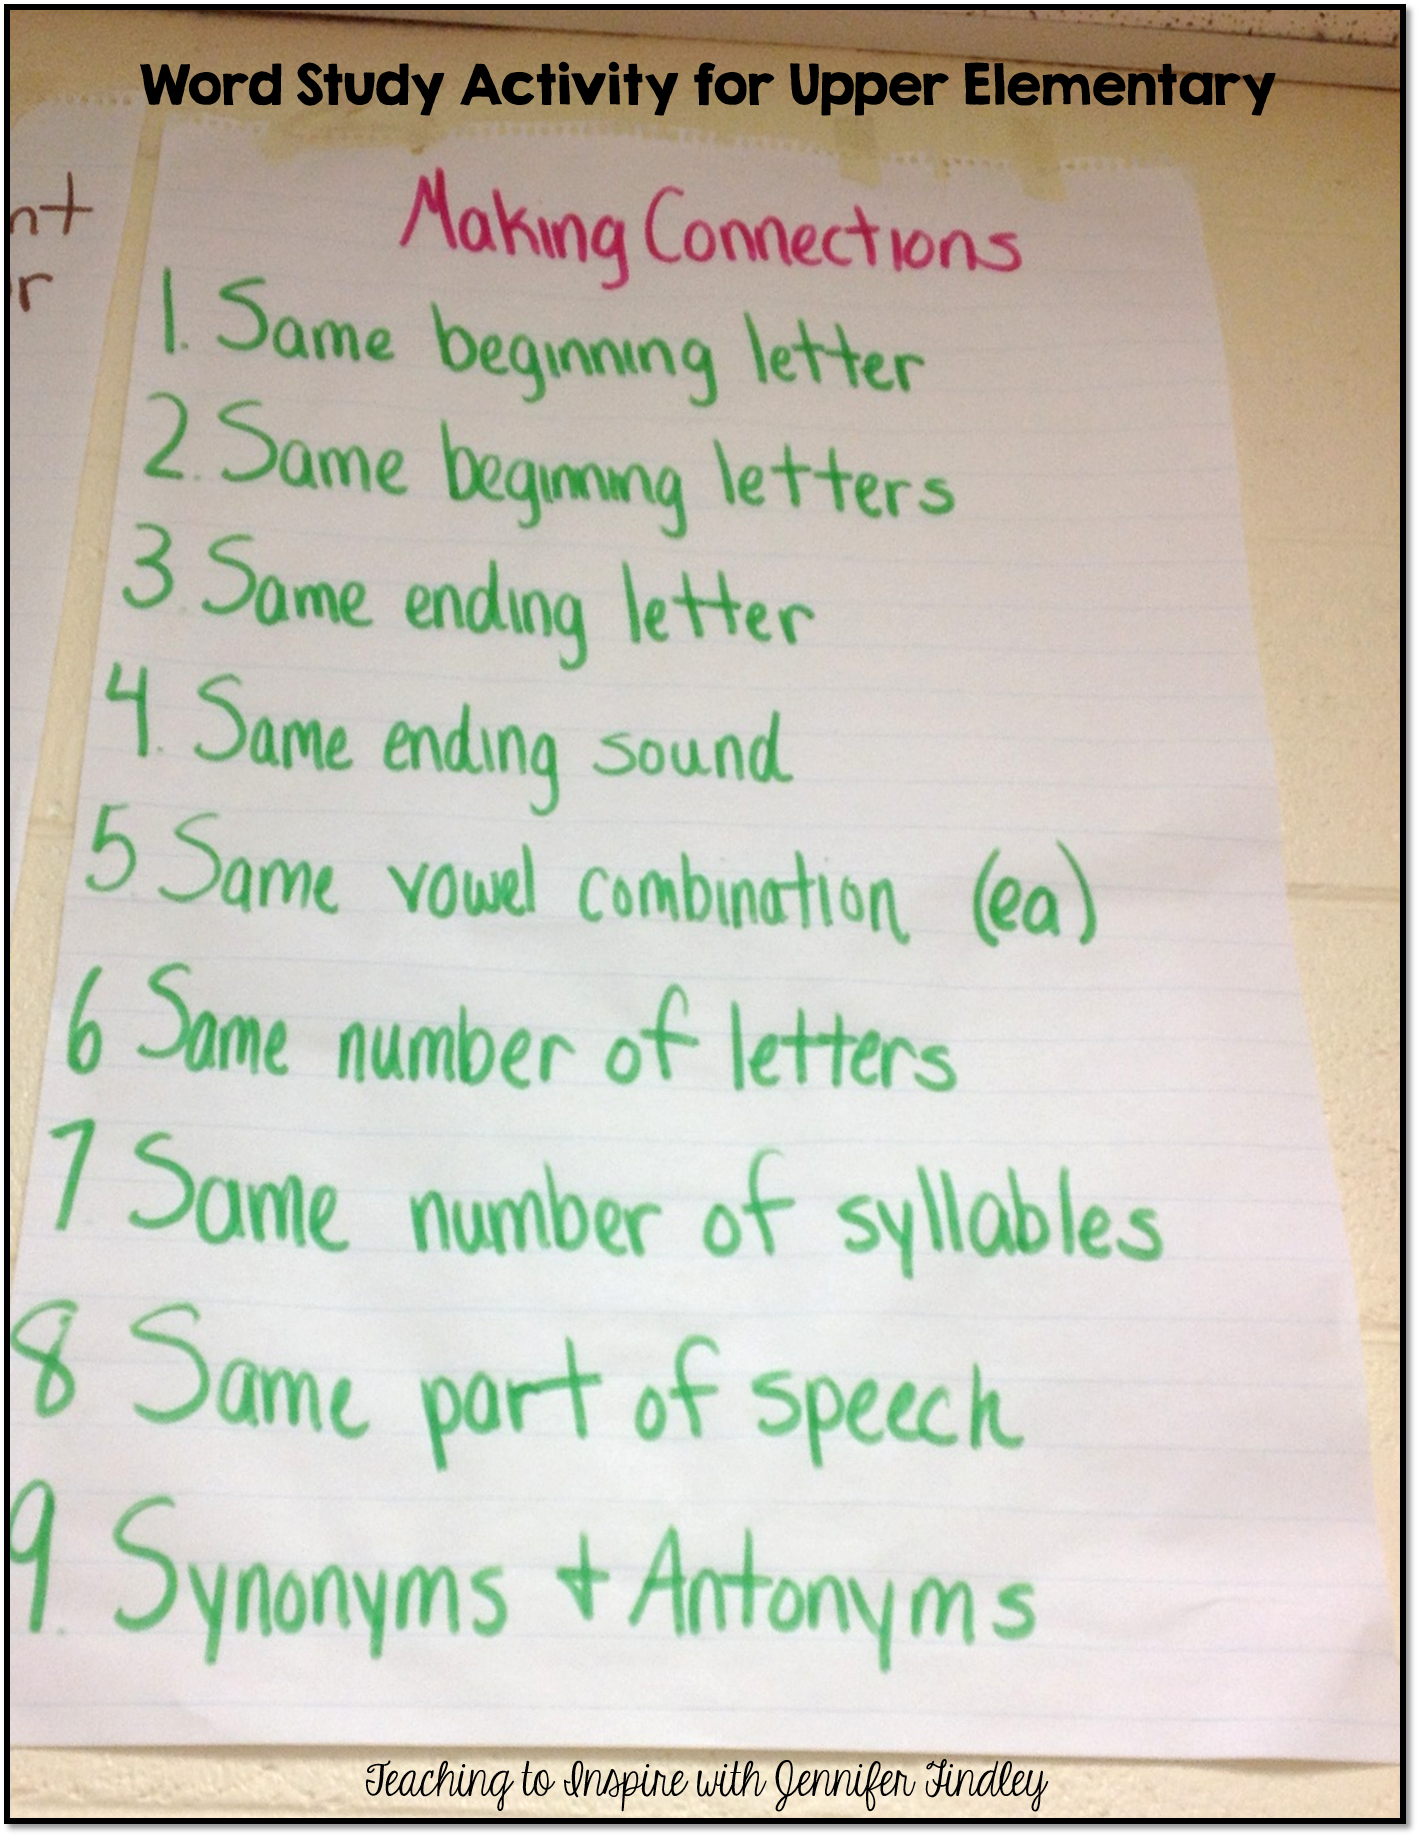 Free Word Study Activity For Upper Elementary